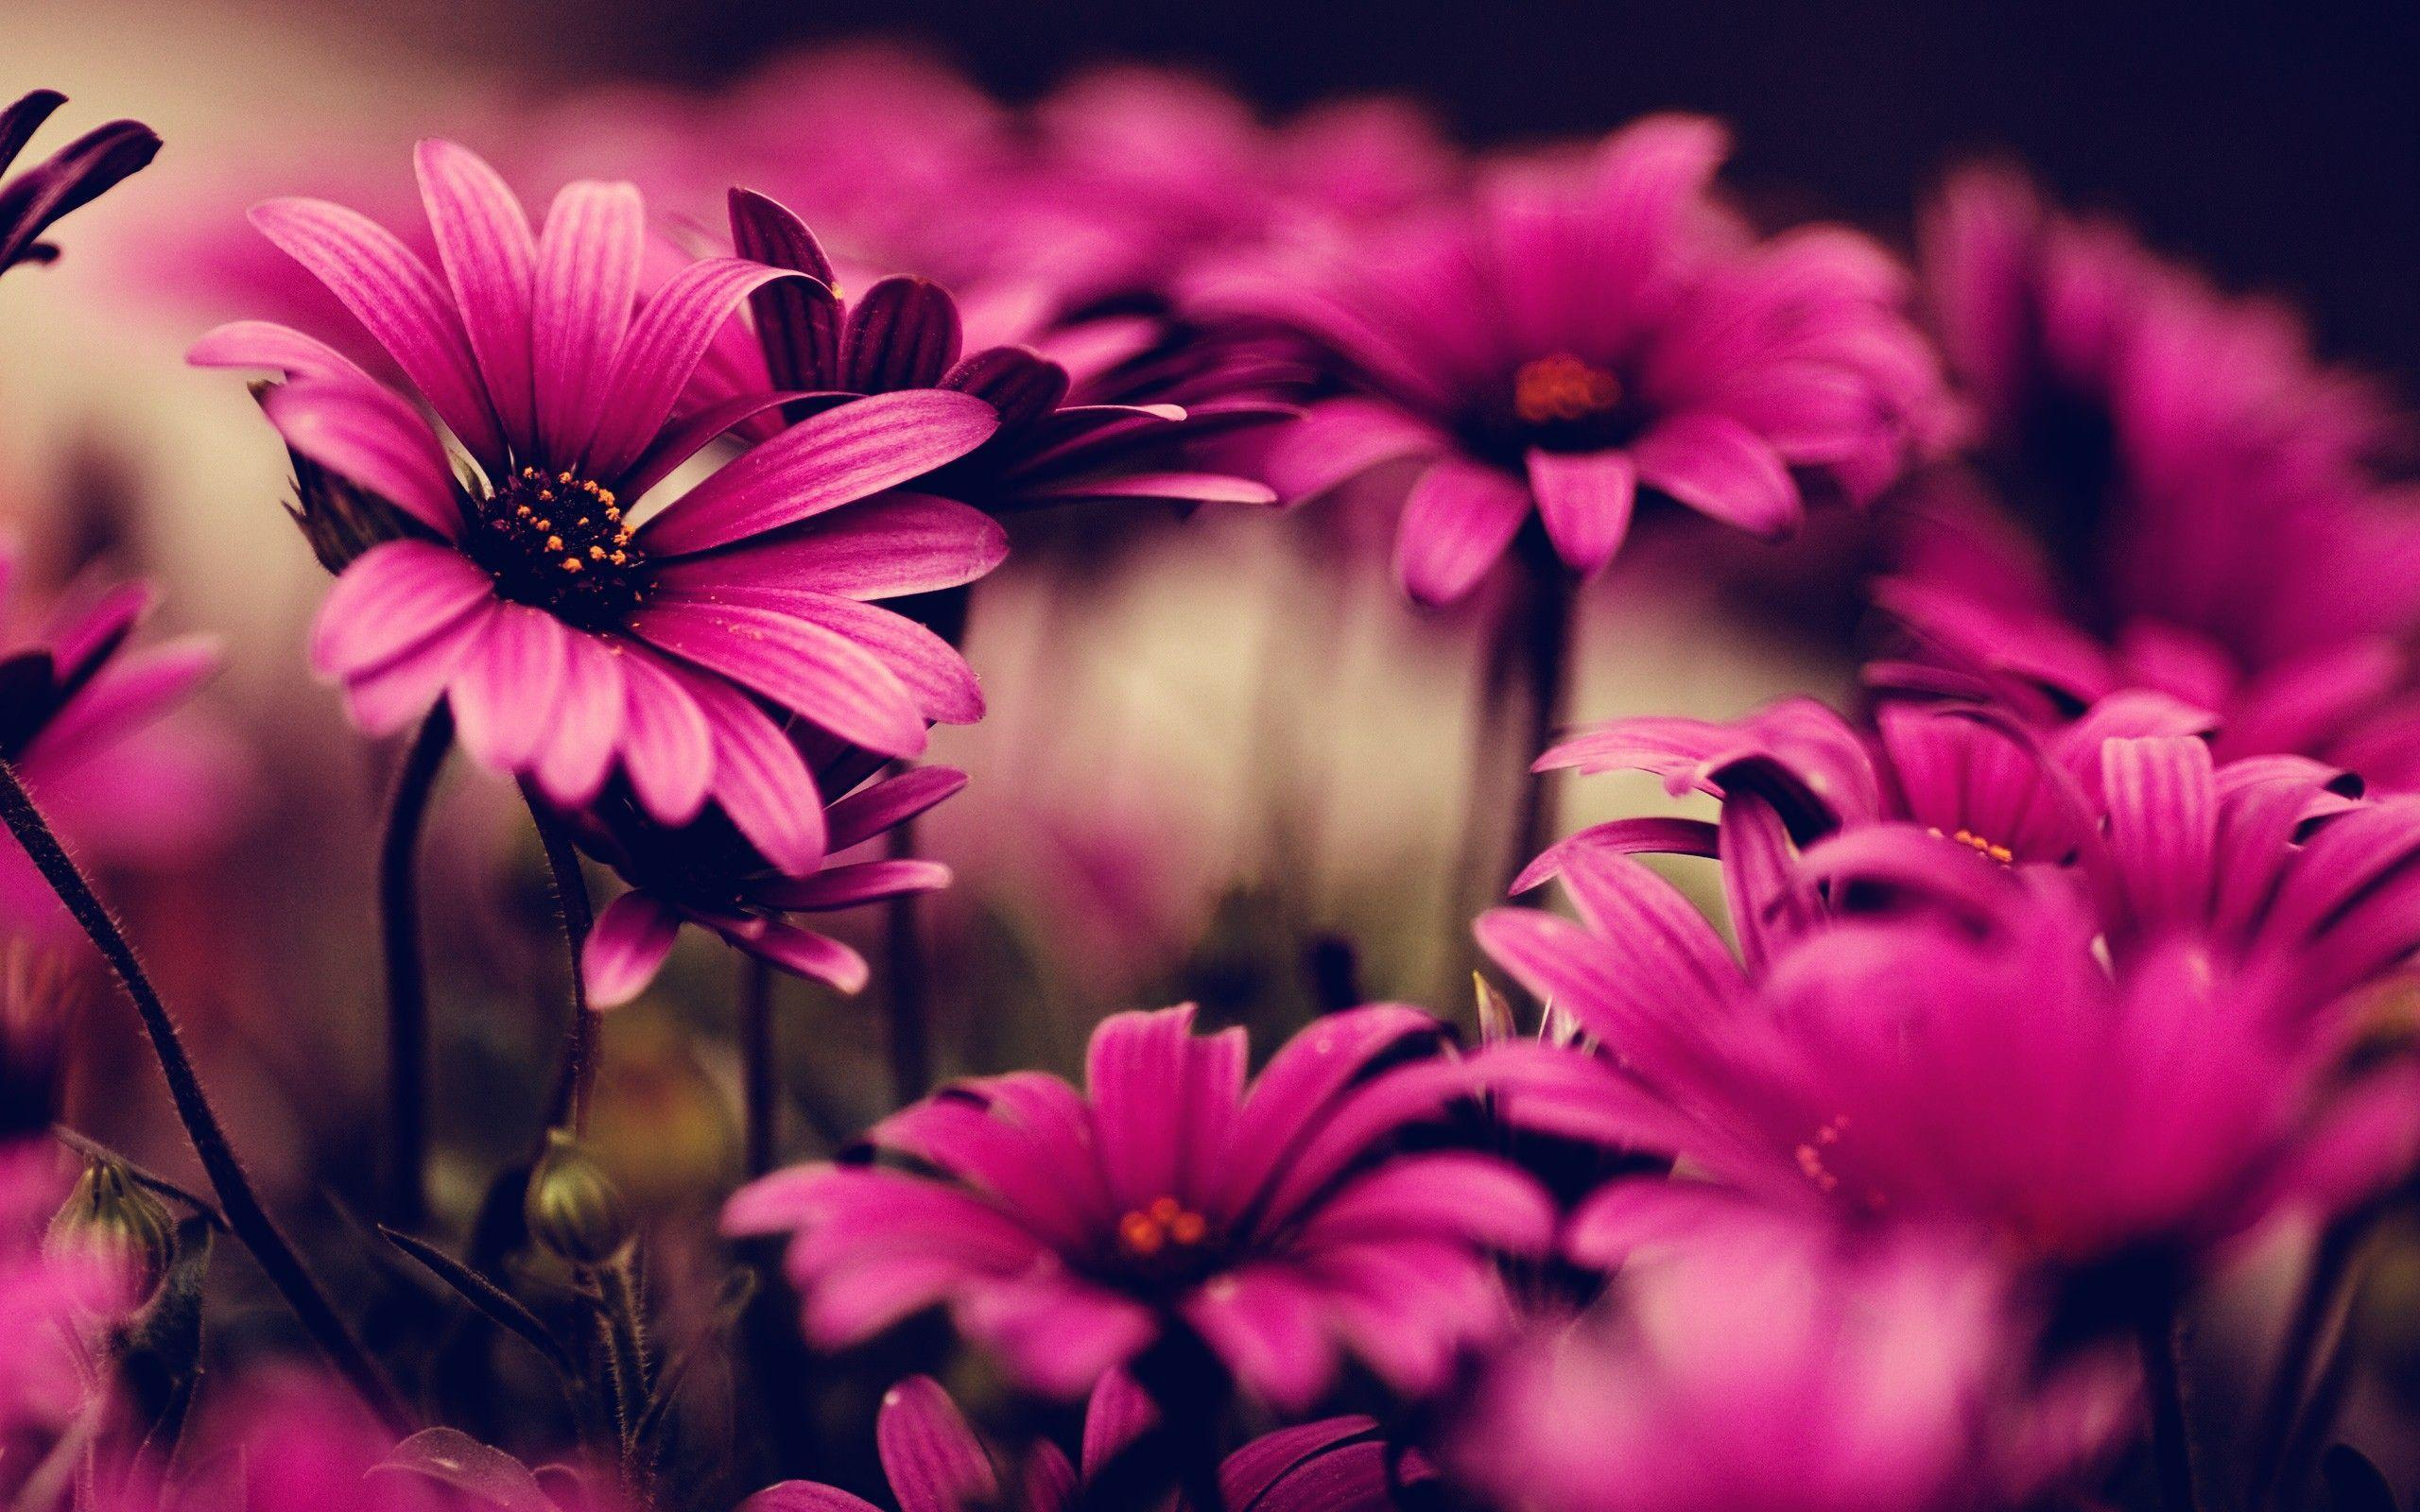 wallpaper pink flowered flower - photo #11